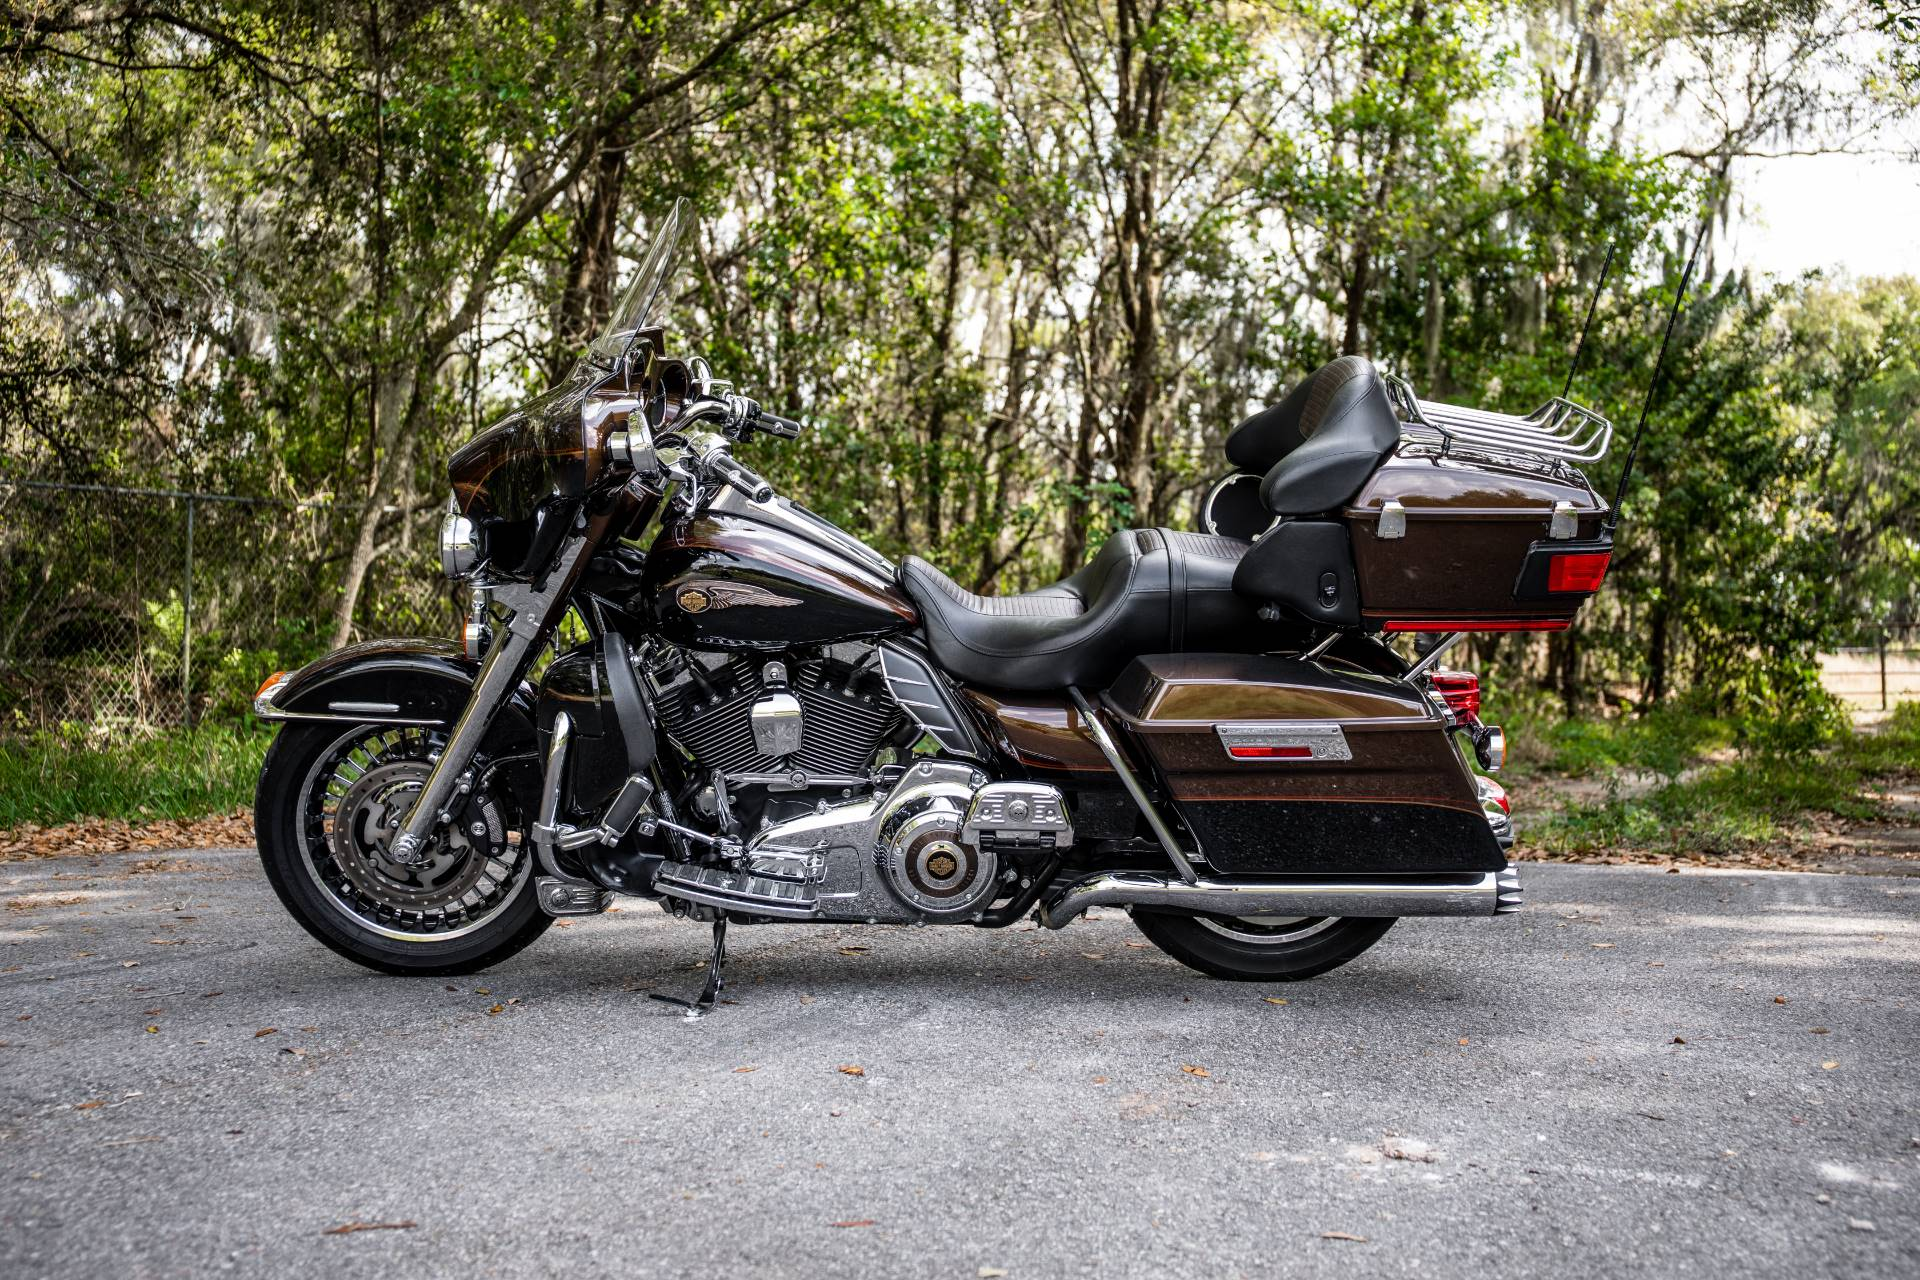 2013 Harley-Davidson Electra Glide® Ultra Limited 110th Anniversary Edition in Lakeland, Florida - Photo 1